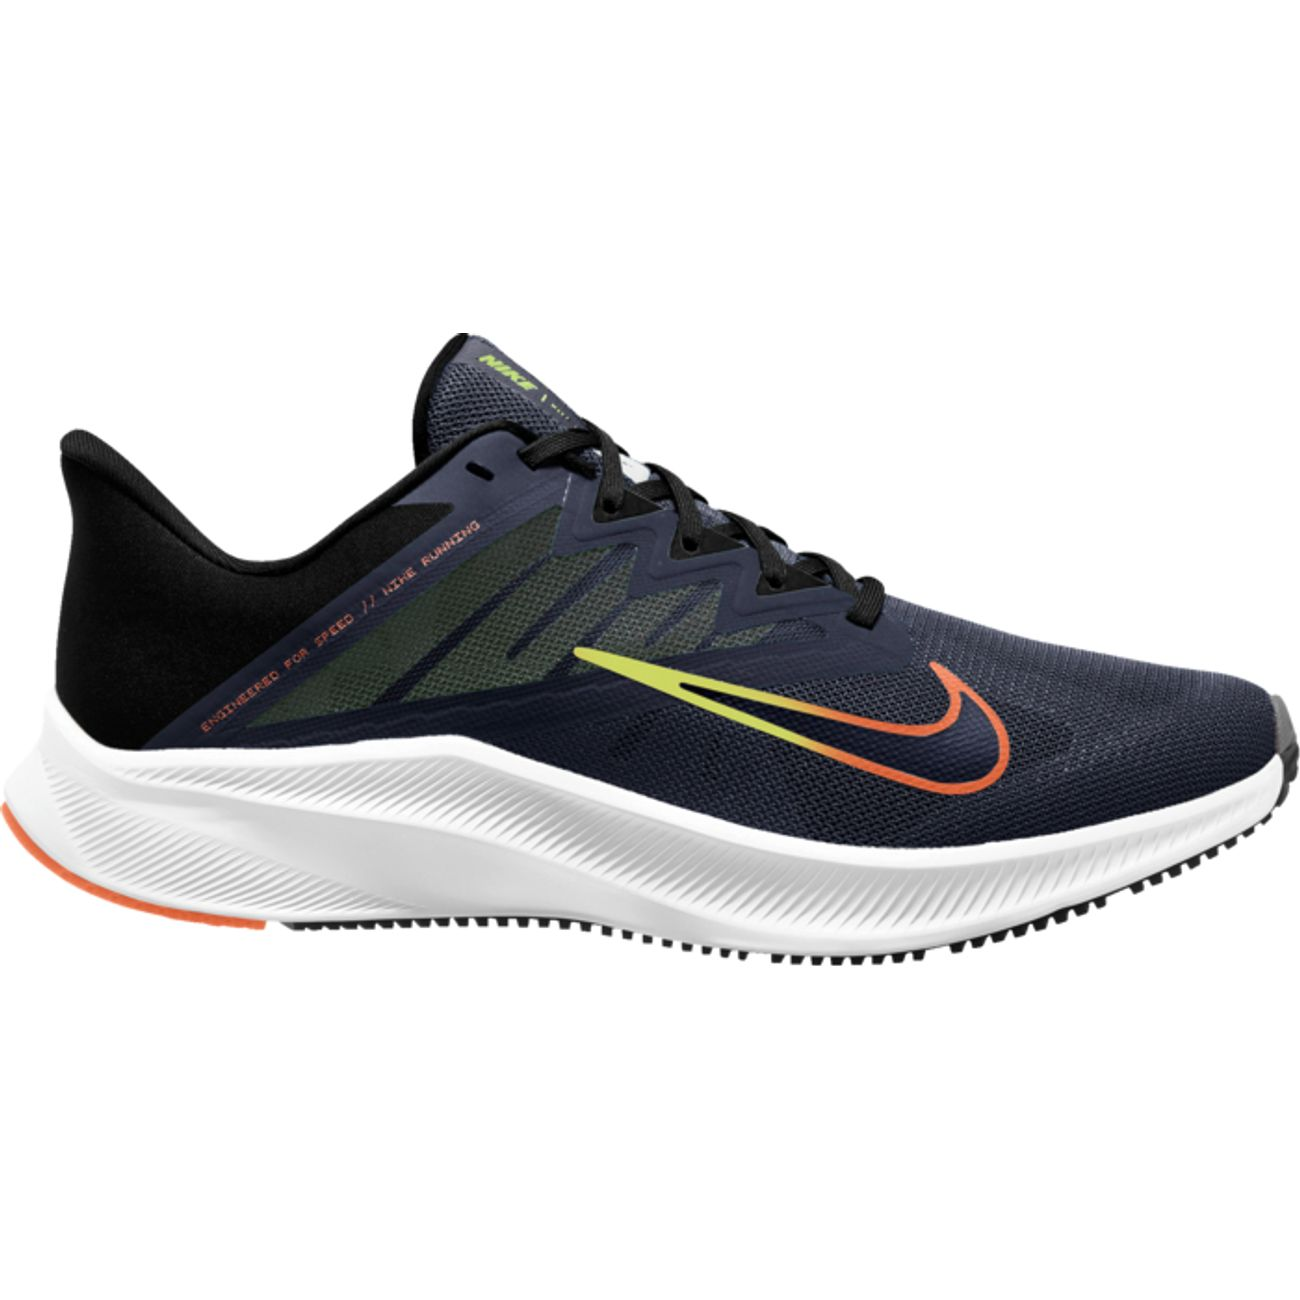 CHAUSSURES BASSES running homme NIKE NIKE QUEST 3